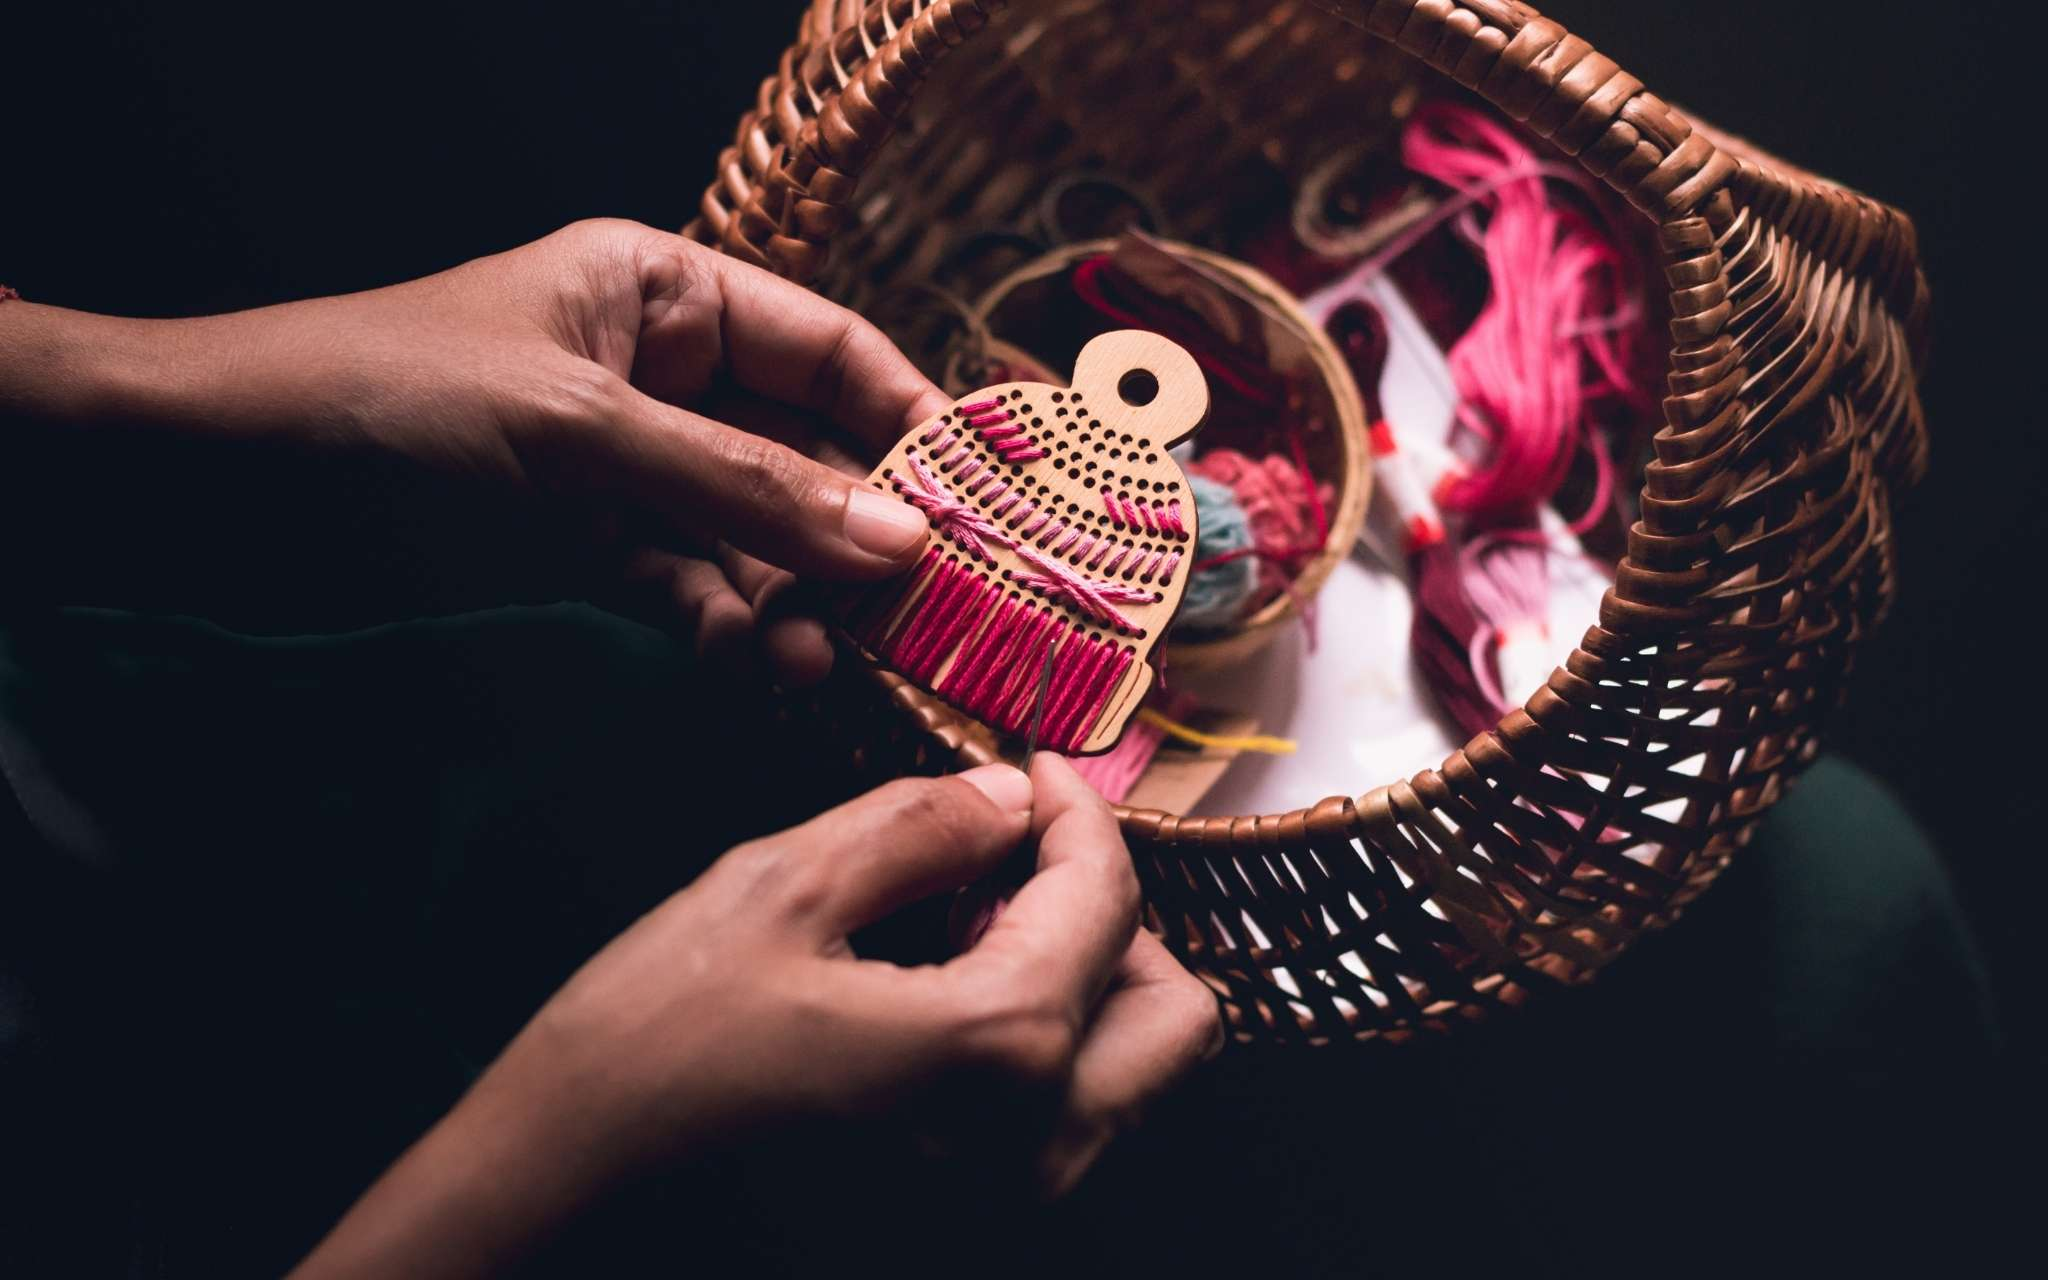 A hat shaped wooden tree ornament is held in hands as it's stitched with brightly coloured threads.